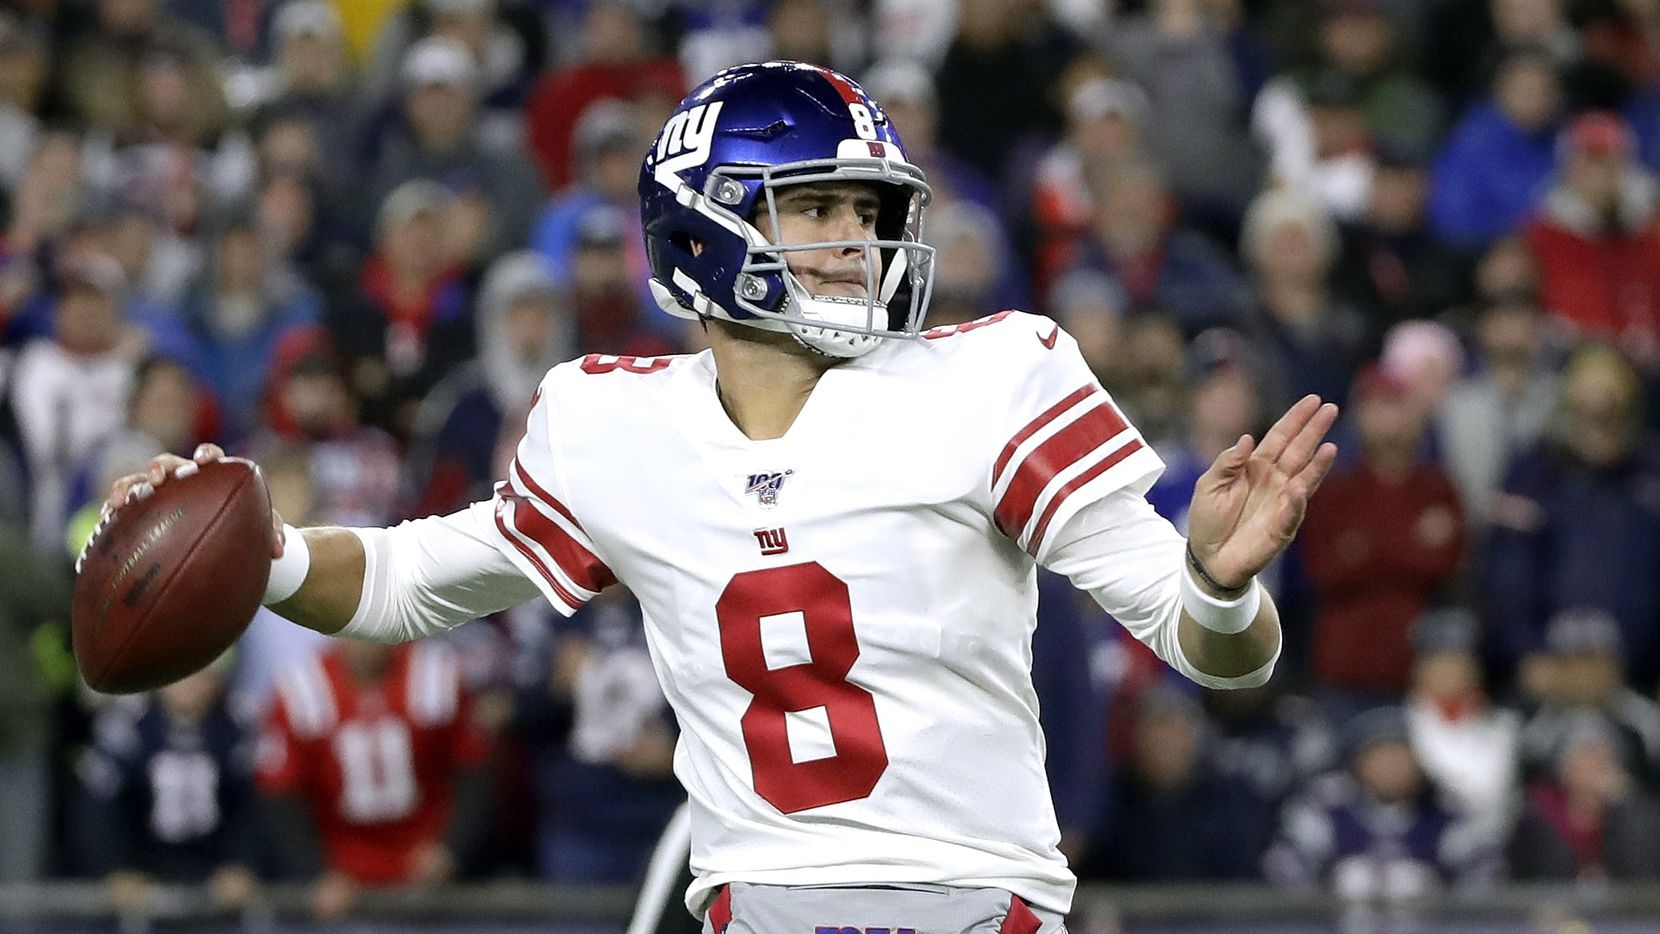 New York Giants quarterback Daniel Jones passes against the New England Patriots in the first half of an NFL football game, Thursday, Oct. 10, 2019, in Foxborough, Mass.